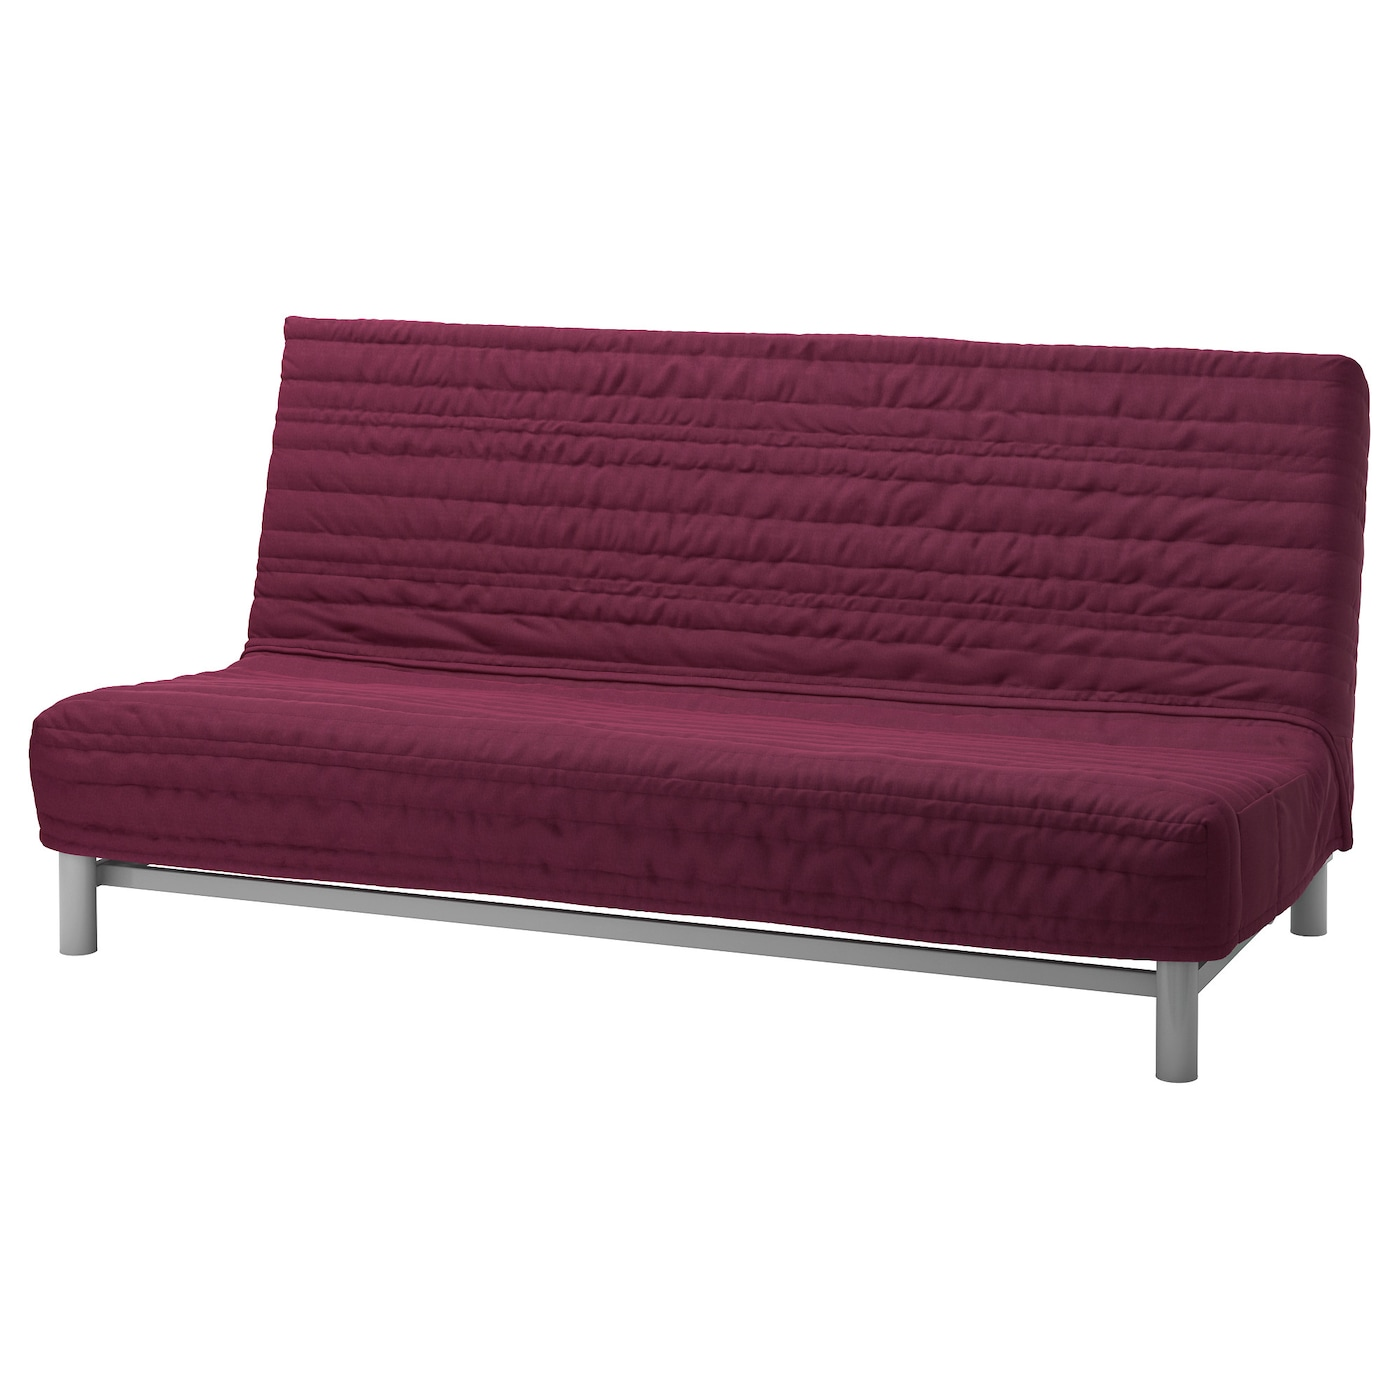 Beddinge l v s three seat sofa bed knisa cerise ikea for Precio sofa cama matrimonial